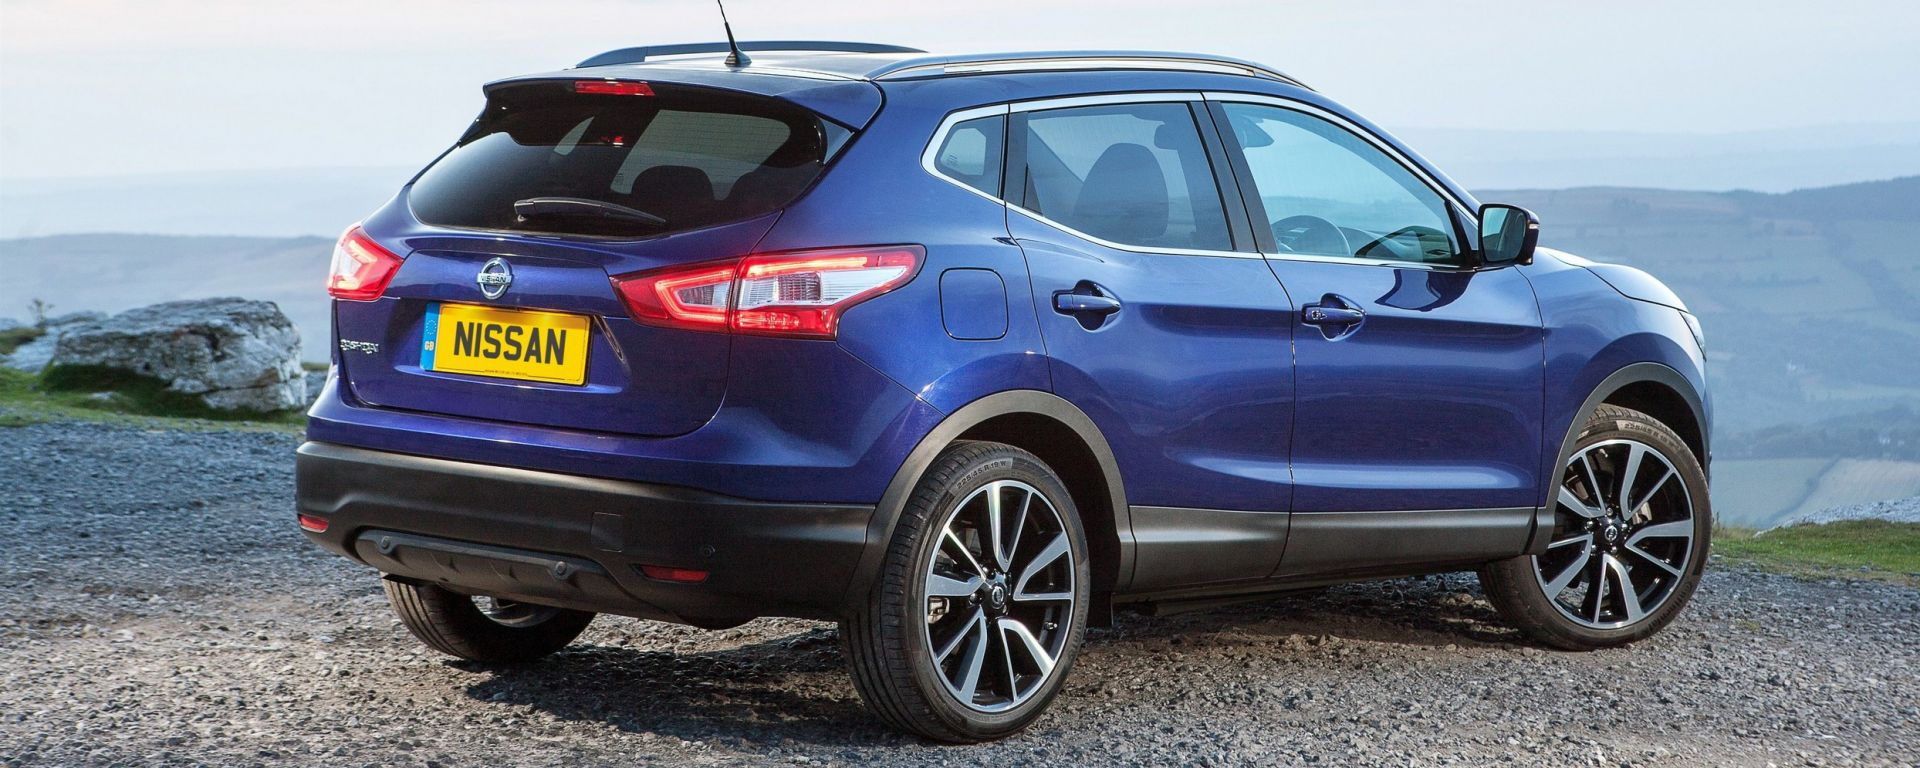 Nissan Qashqai: per BusinessCar è Crossover dell'anno